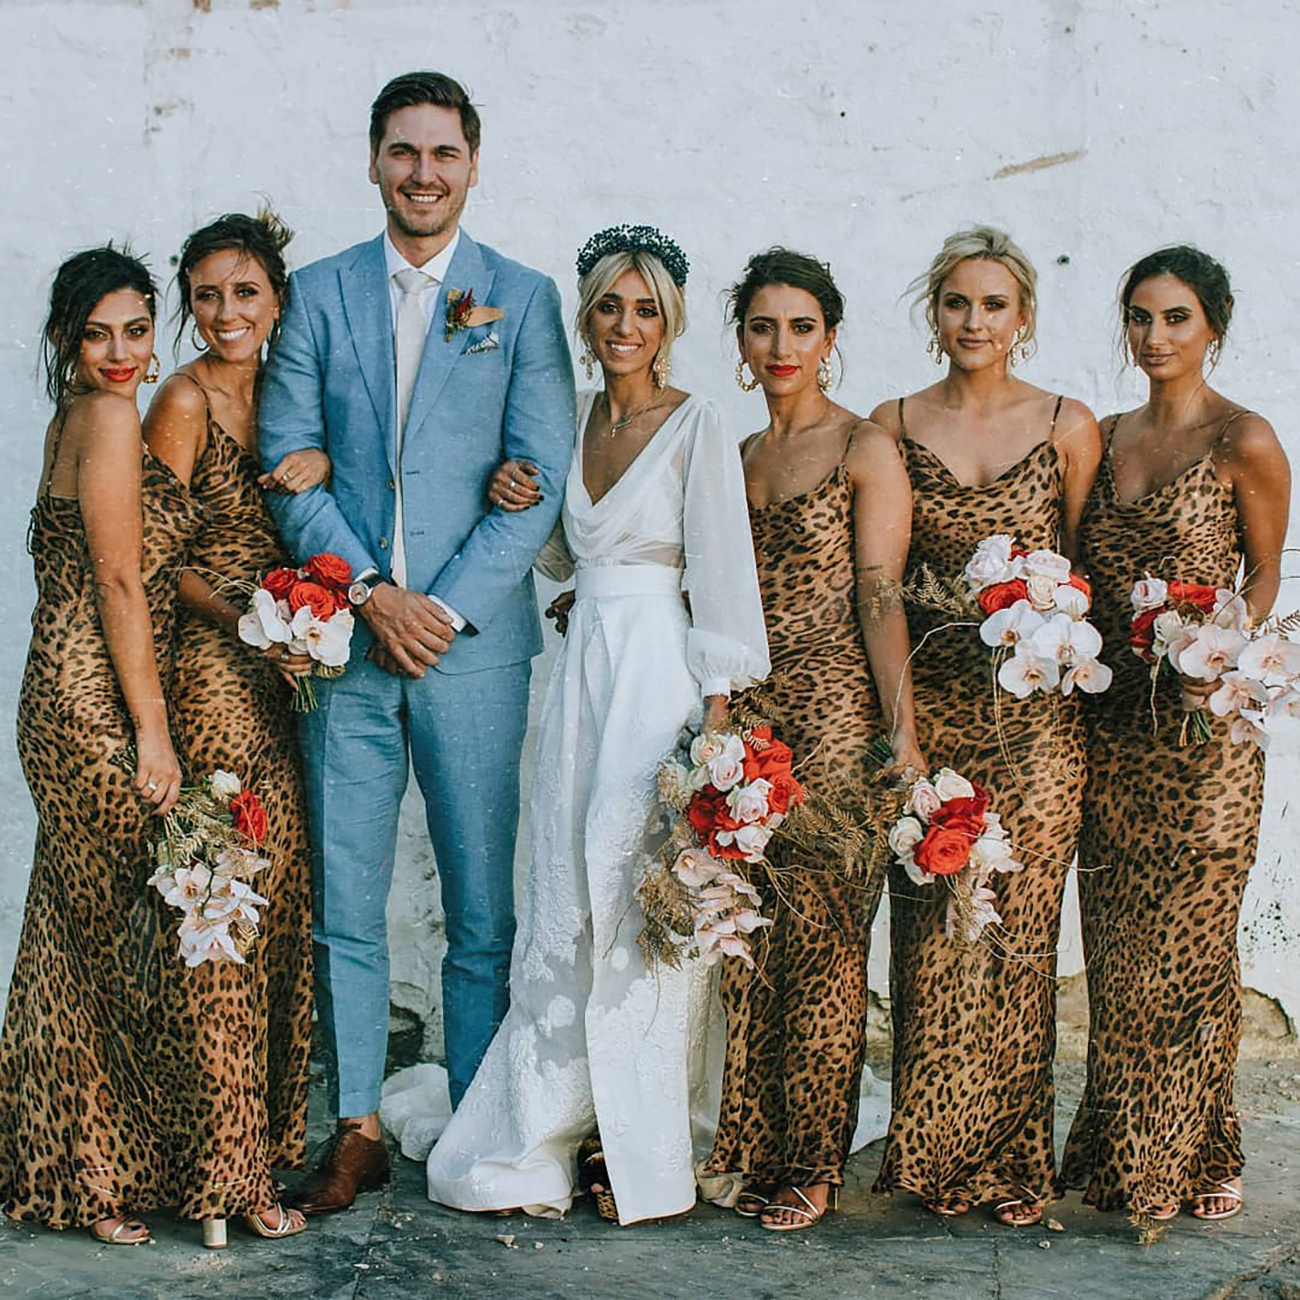 matching leopard print bridesmaid dresses on psaghetti straps are chic and cool